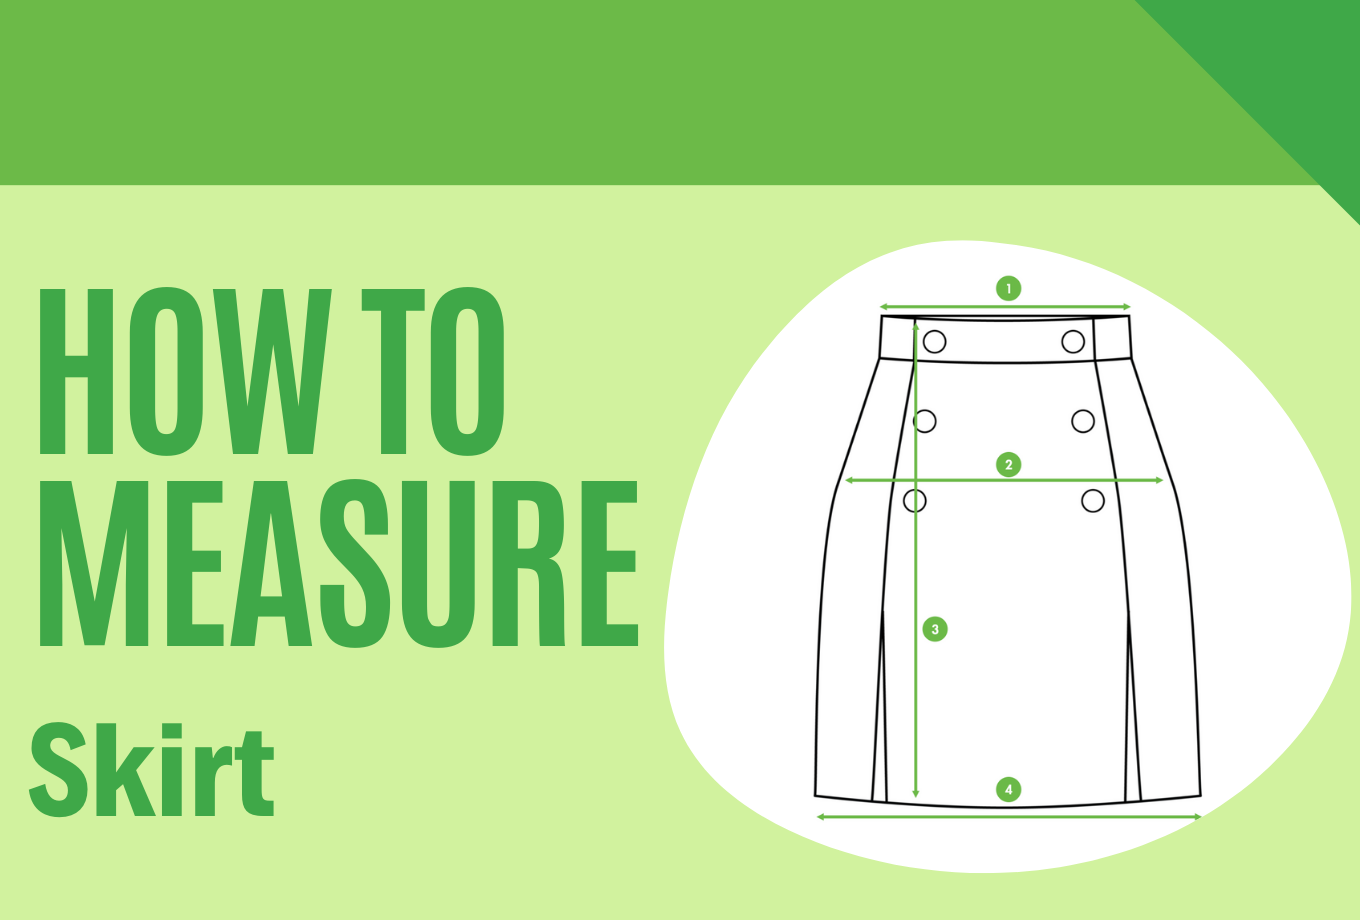 How to measure a Skirt